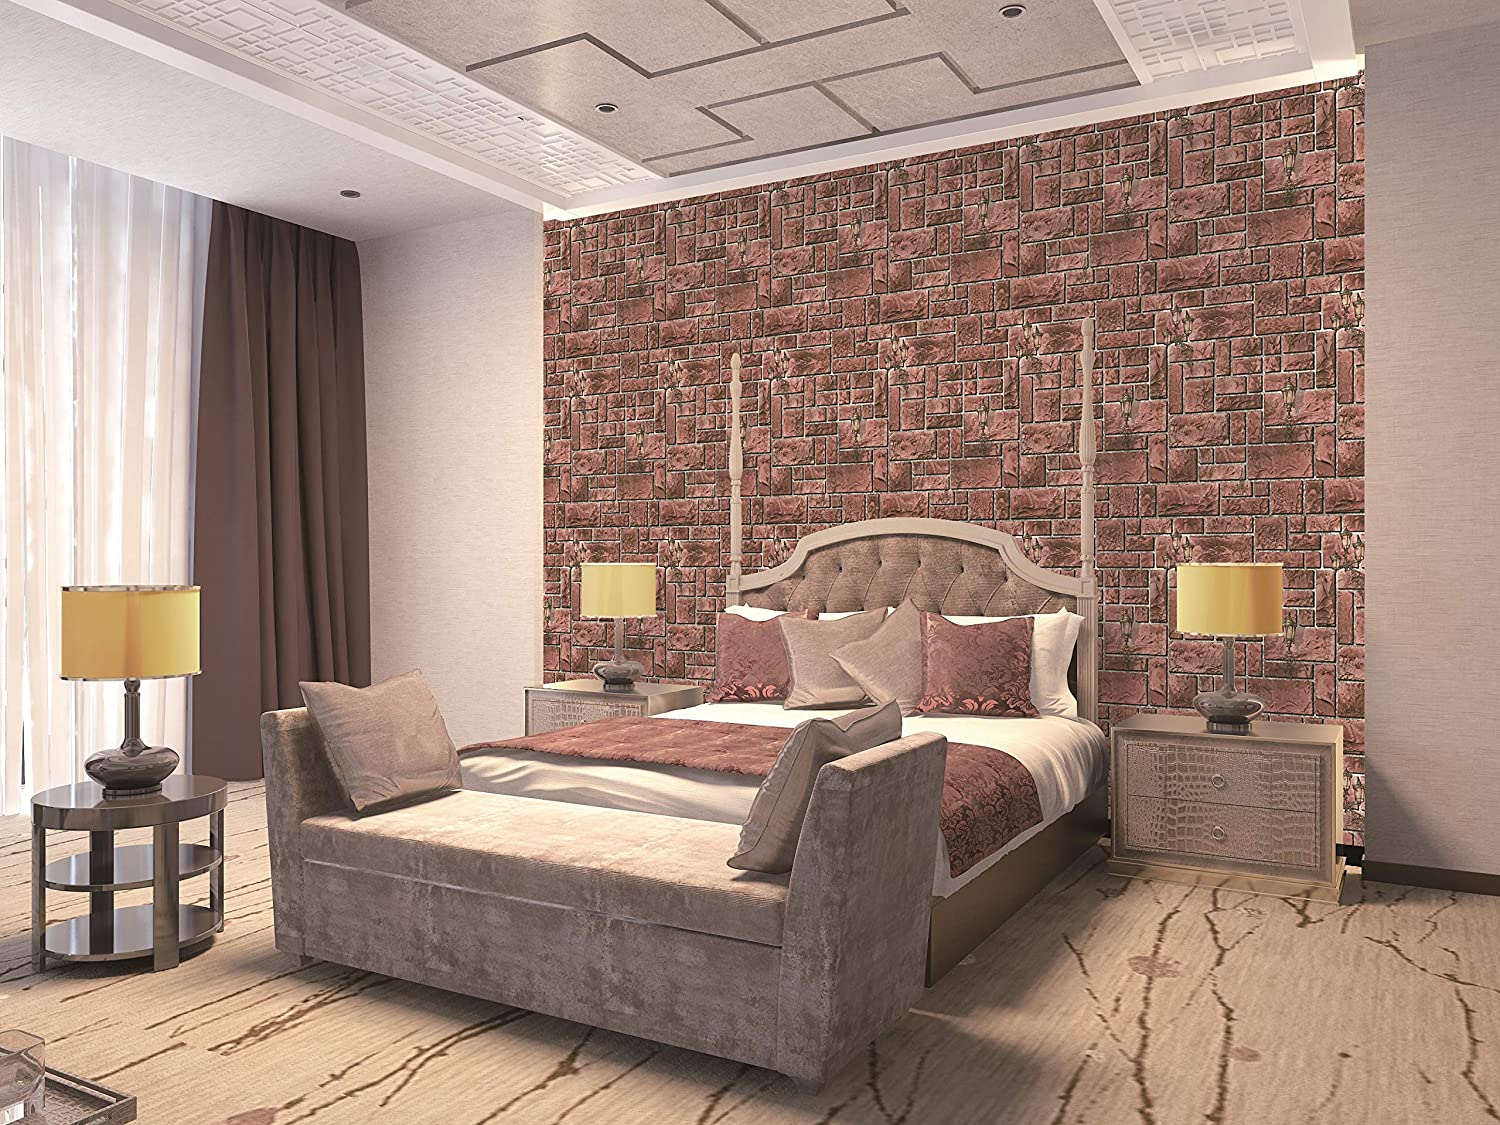 Buy Eurotex 3D Brick Stone Design Wallpaper, use as Wall ...